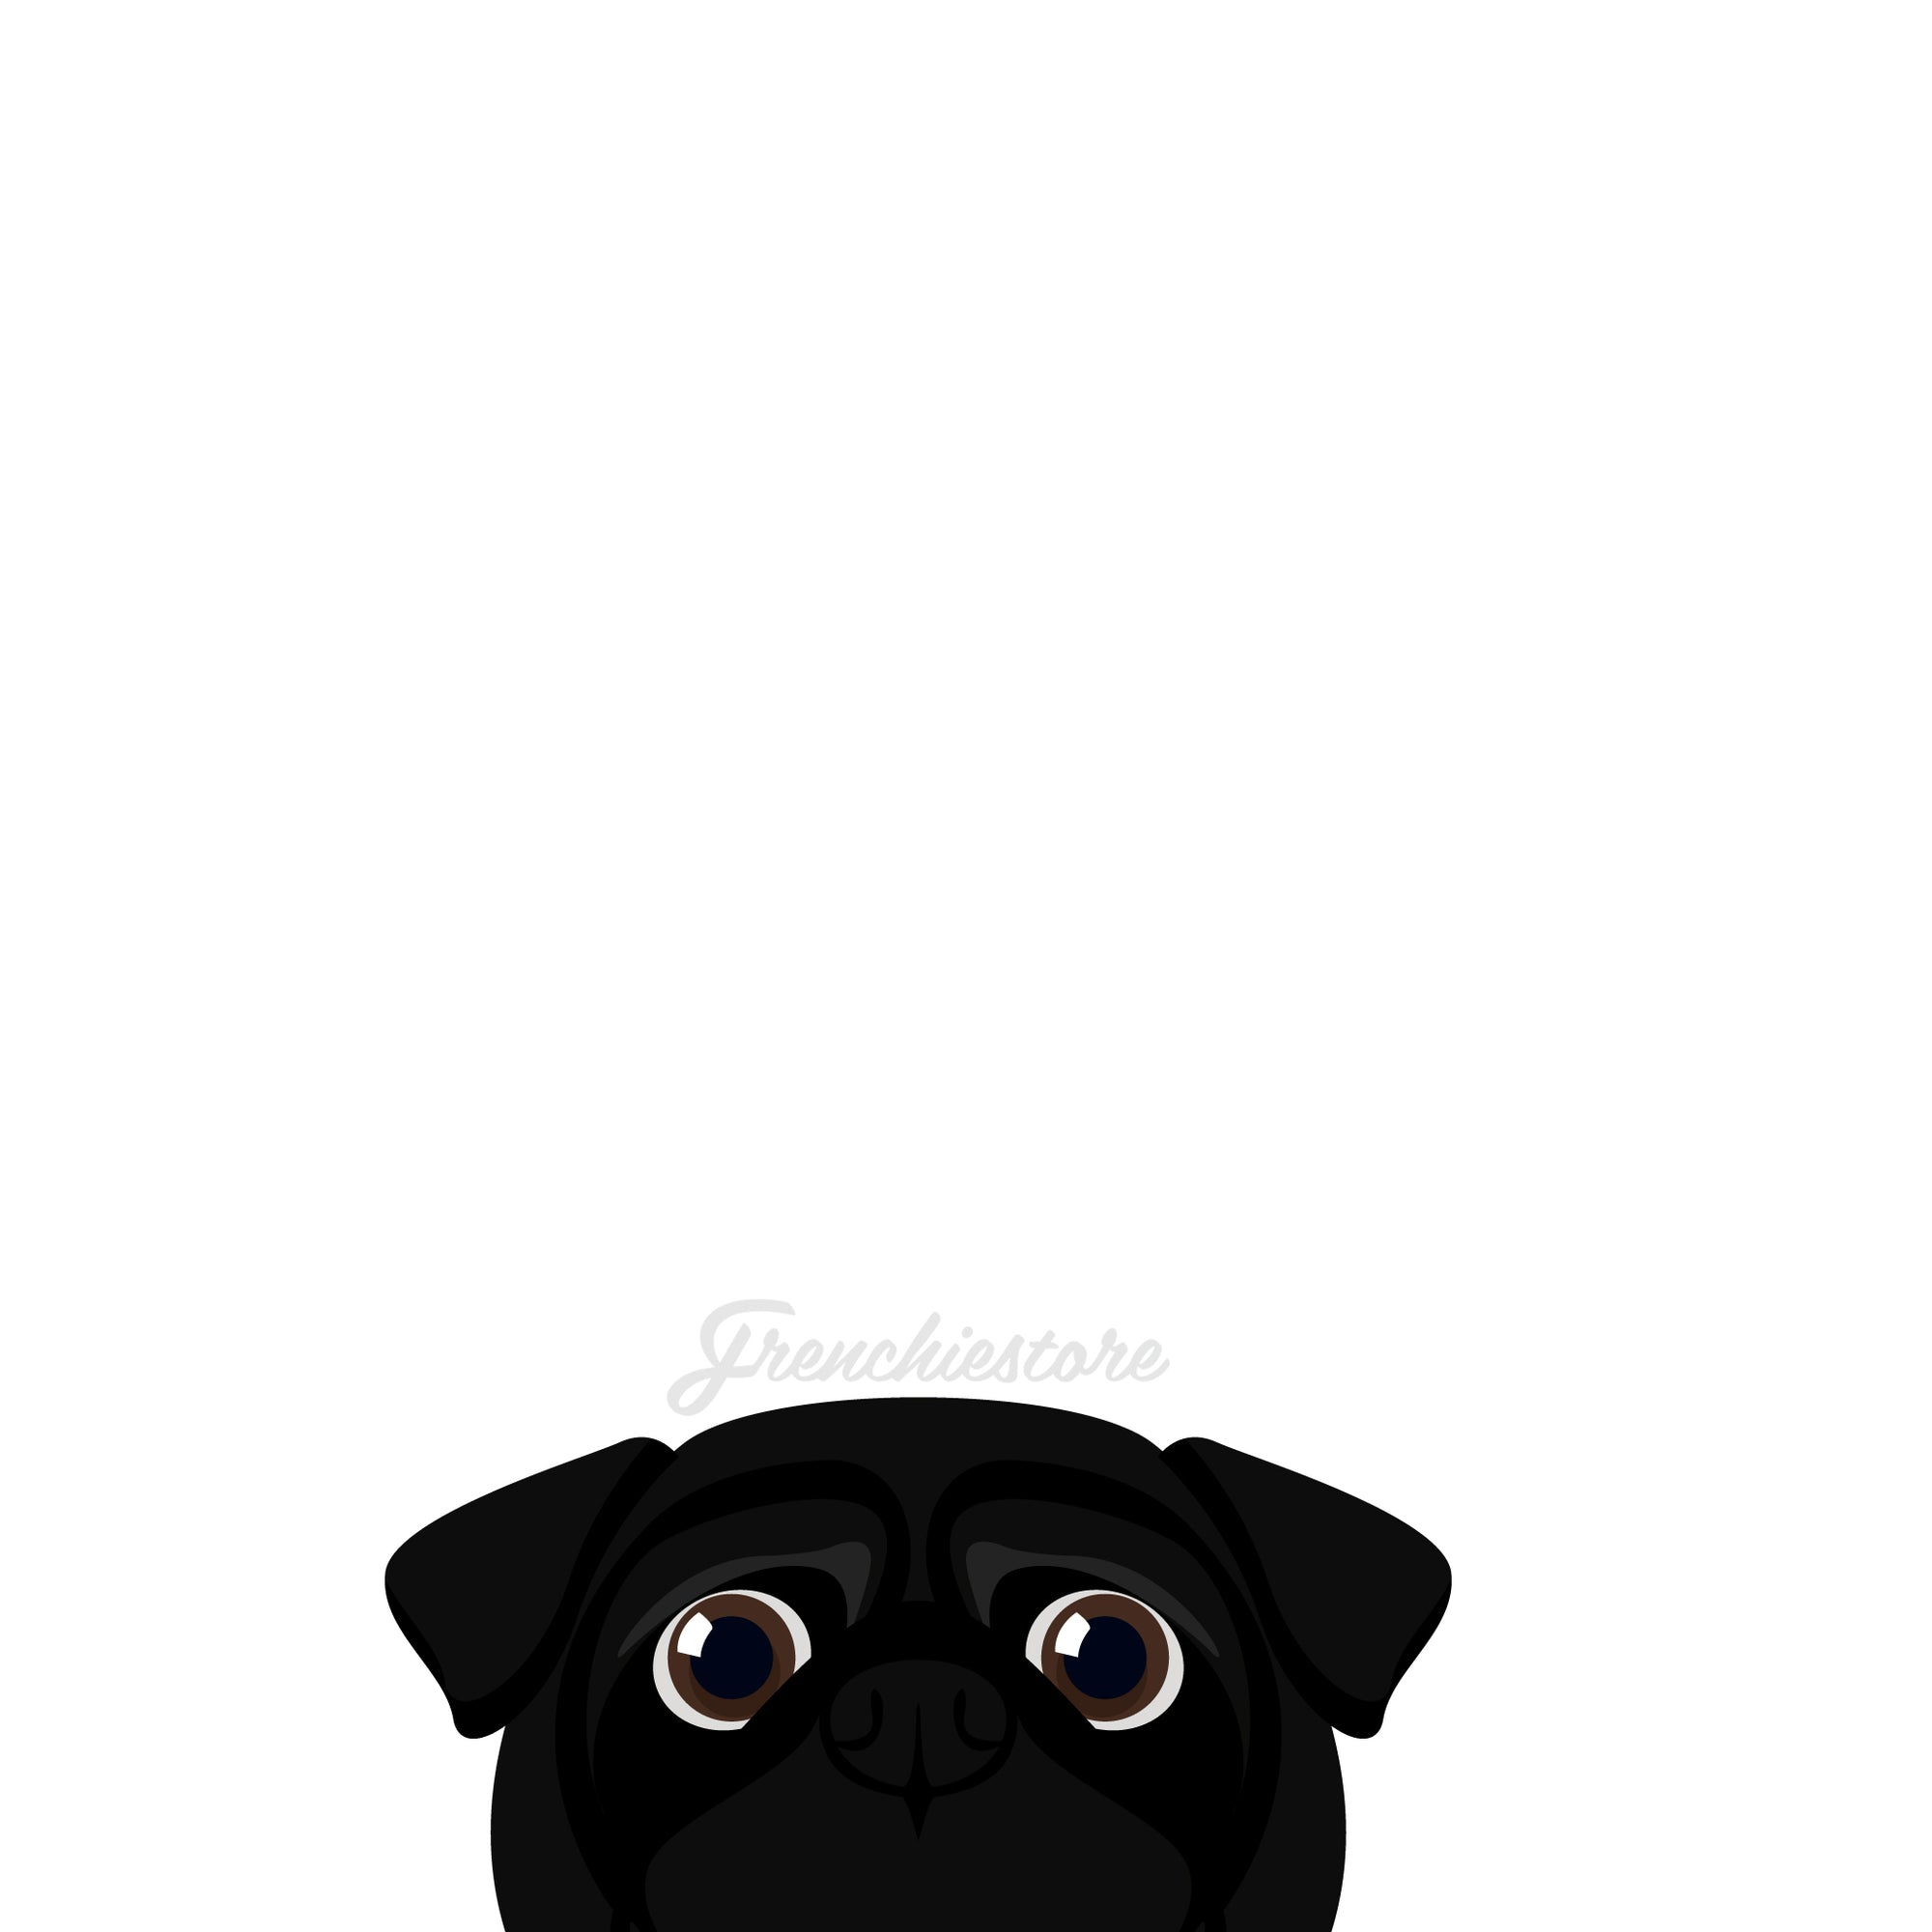 Pug Dog Sticker | Frenchiestore |  Black Pug Car Decal, Frenchie Dog, French Bulldog pet products